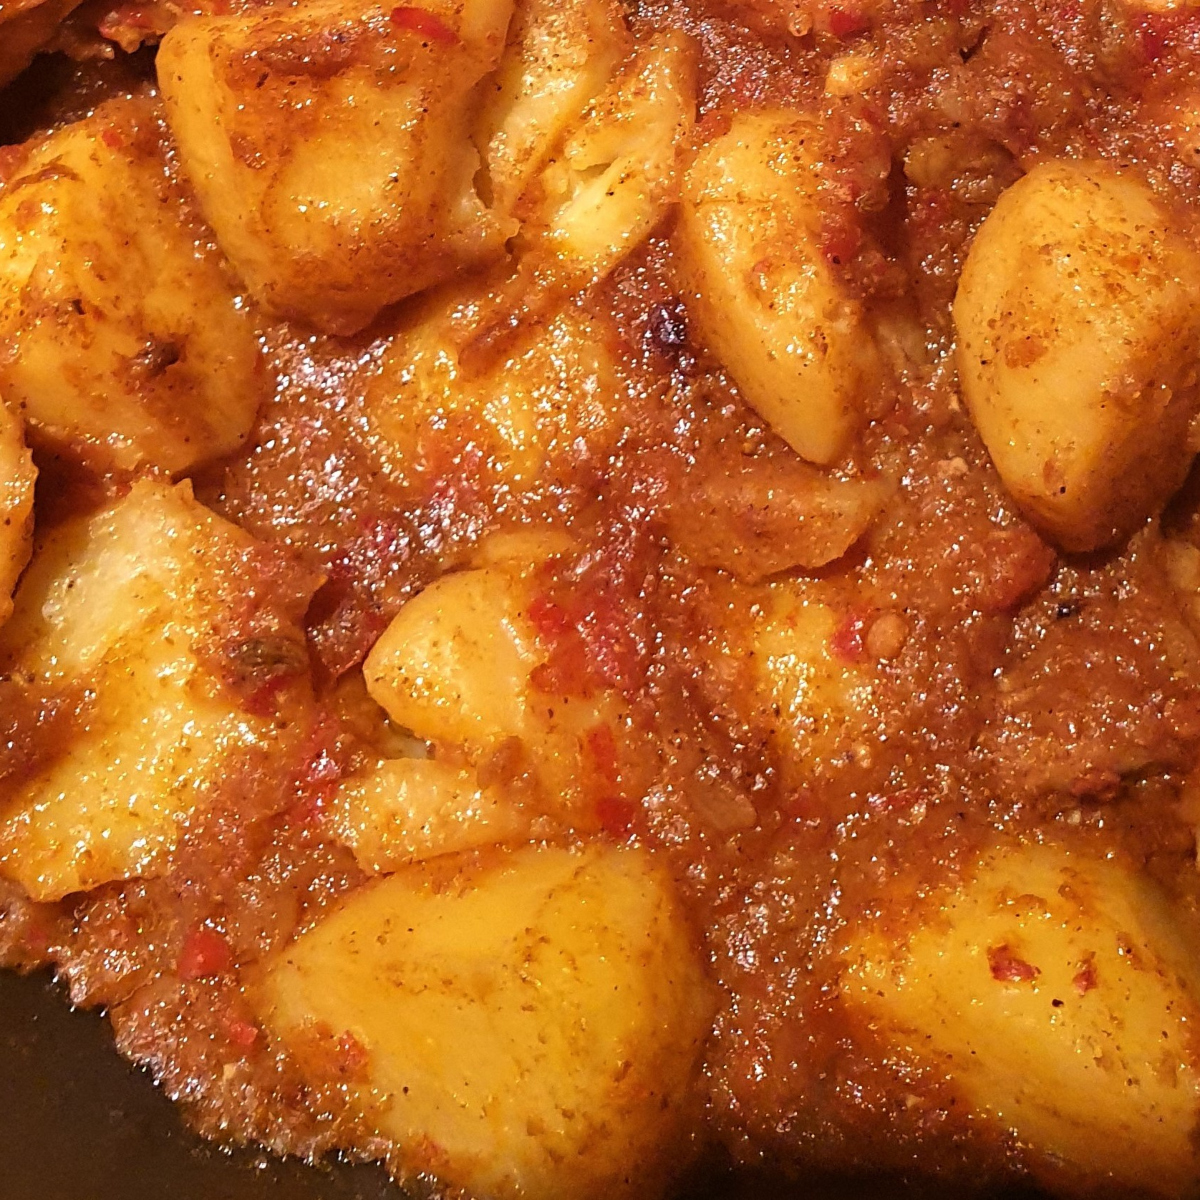 A plate of bombay aloo (bombay potatoes)